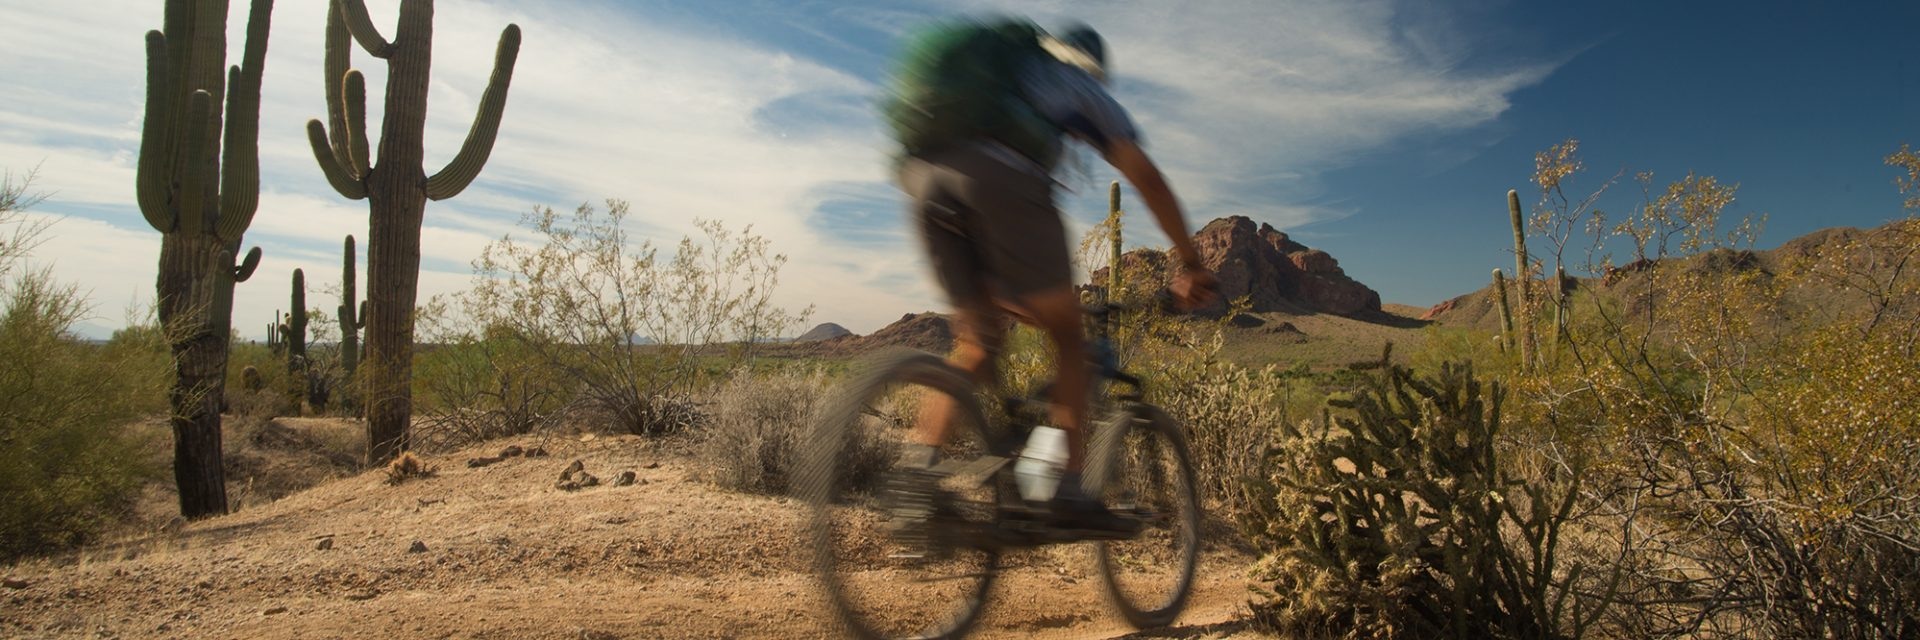 Rider passes saguaros, Arizona's Sonoran Desert guided mtb tour near Phoenix, AZ